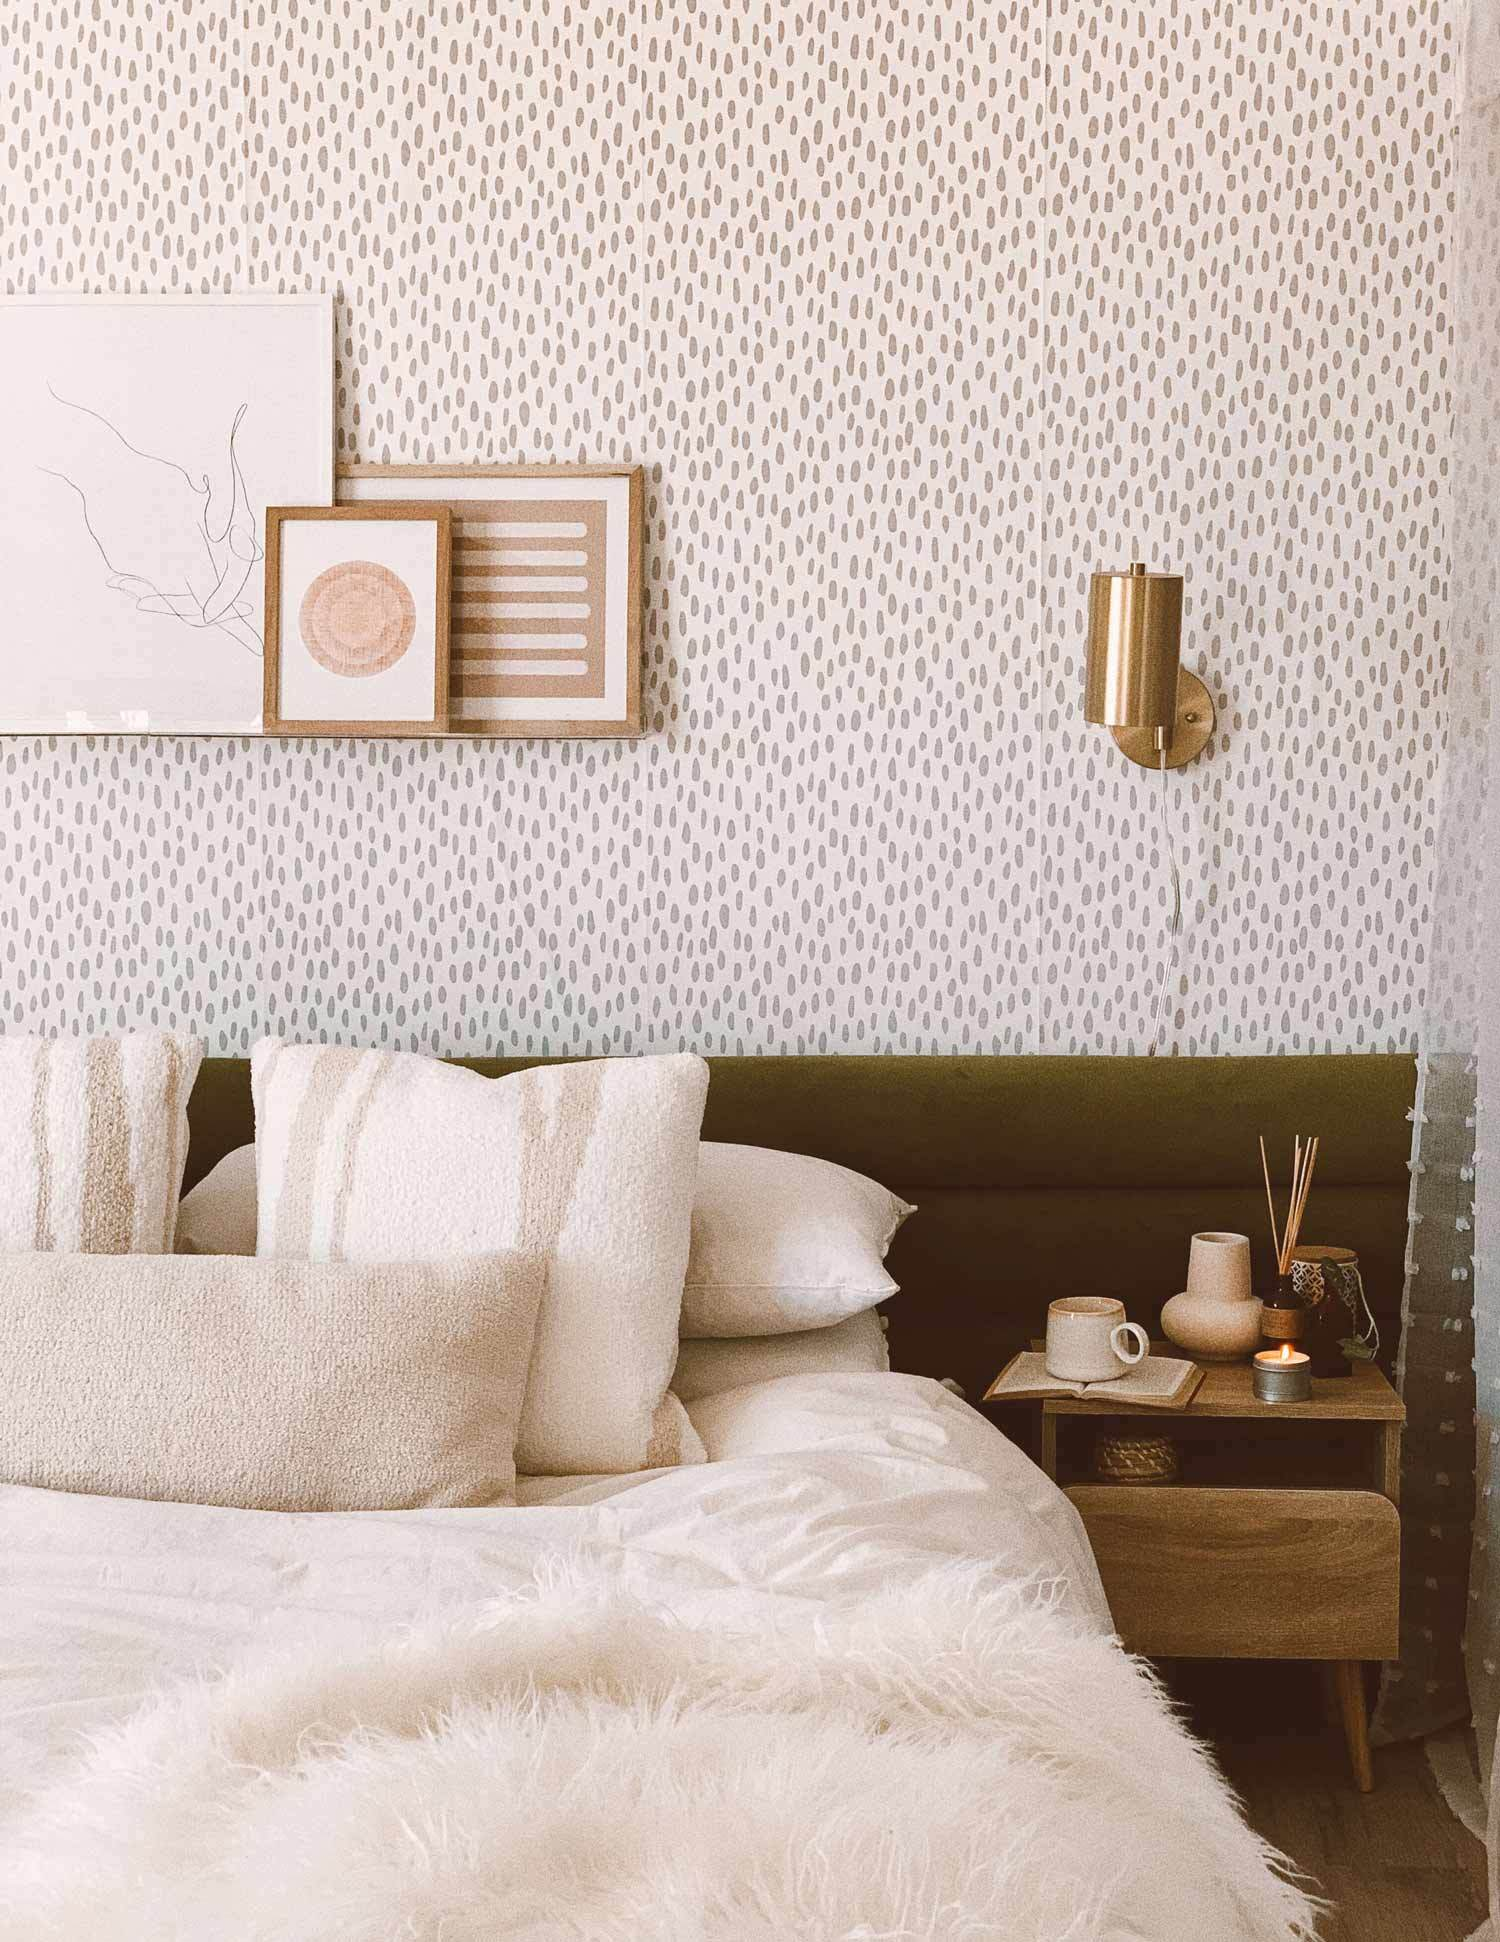 Modern Boho Bedroom Interior With Earthy Tone Colors Grey Speckled Wallpaper Bedroom 1500x1942 Download Hd Wallpaper Wallpapertip